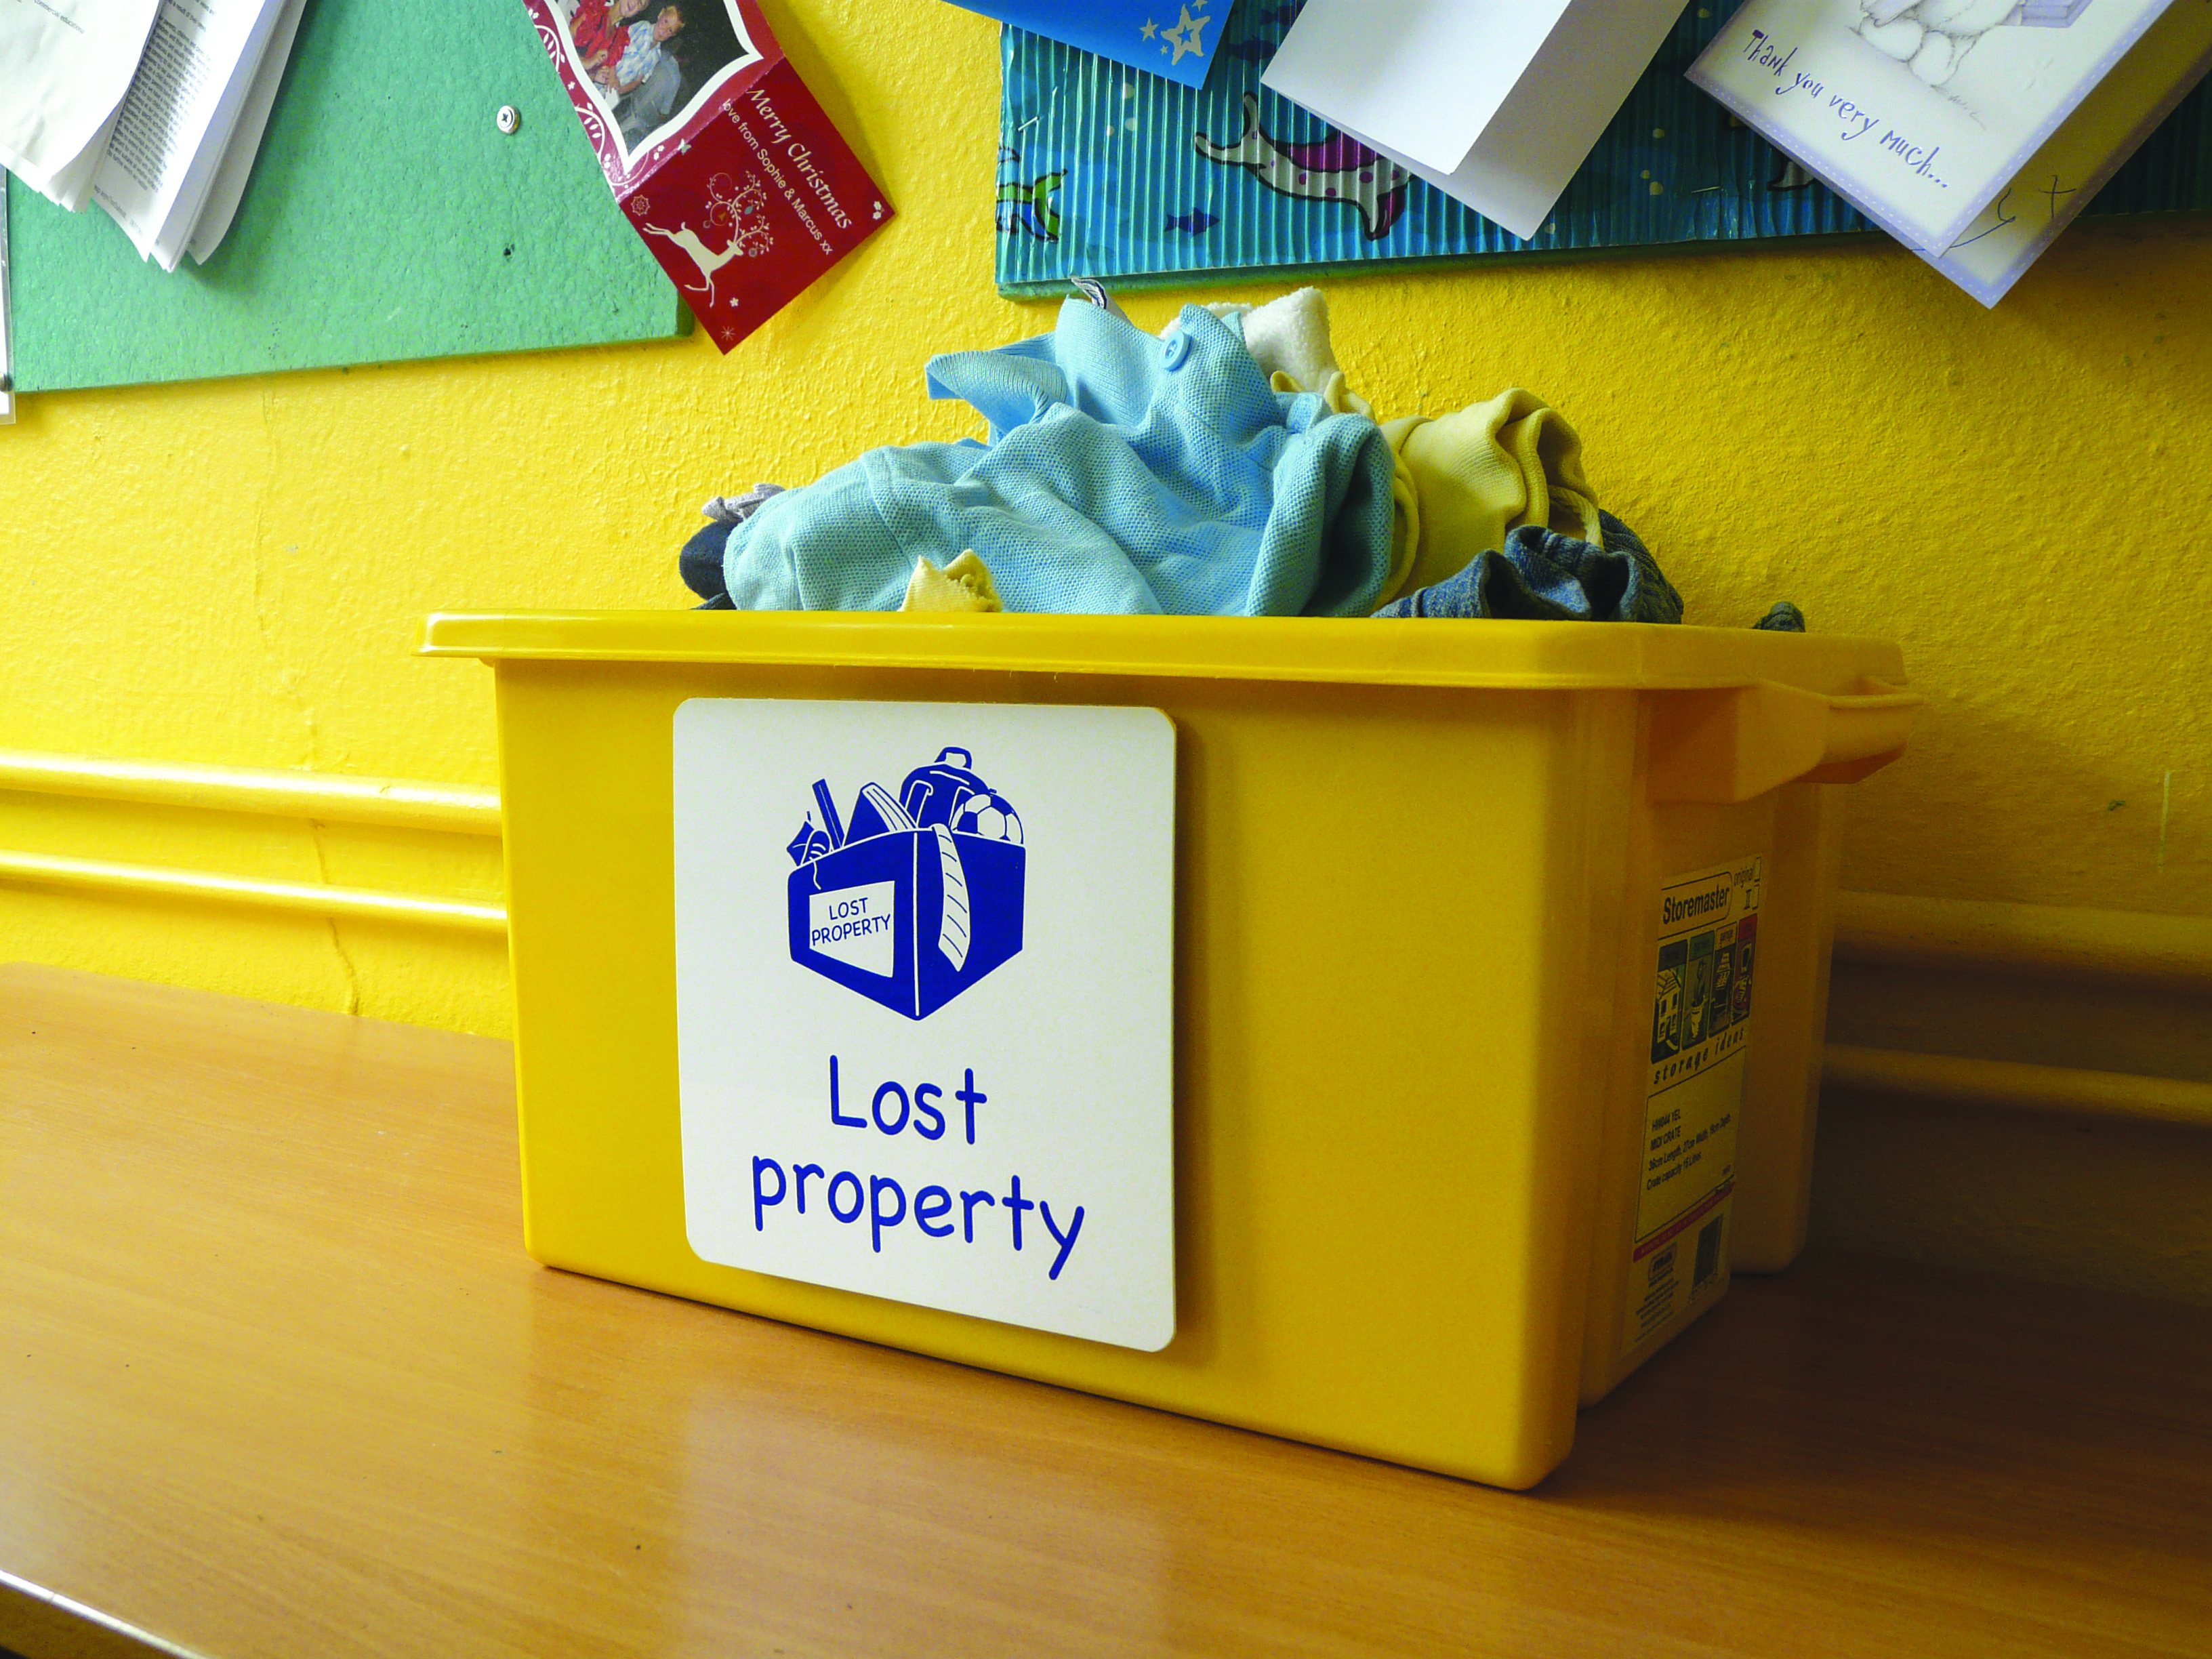 Lost property school sign